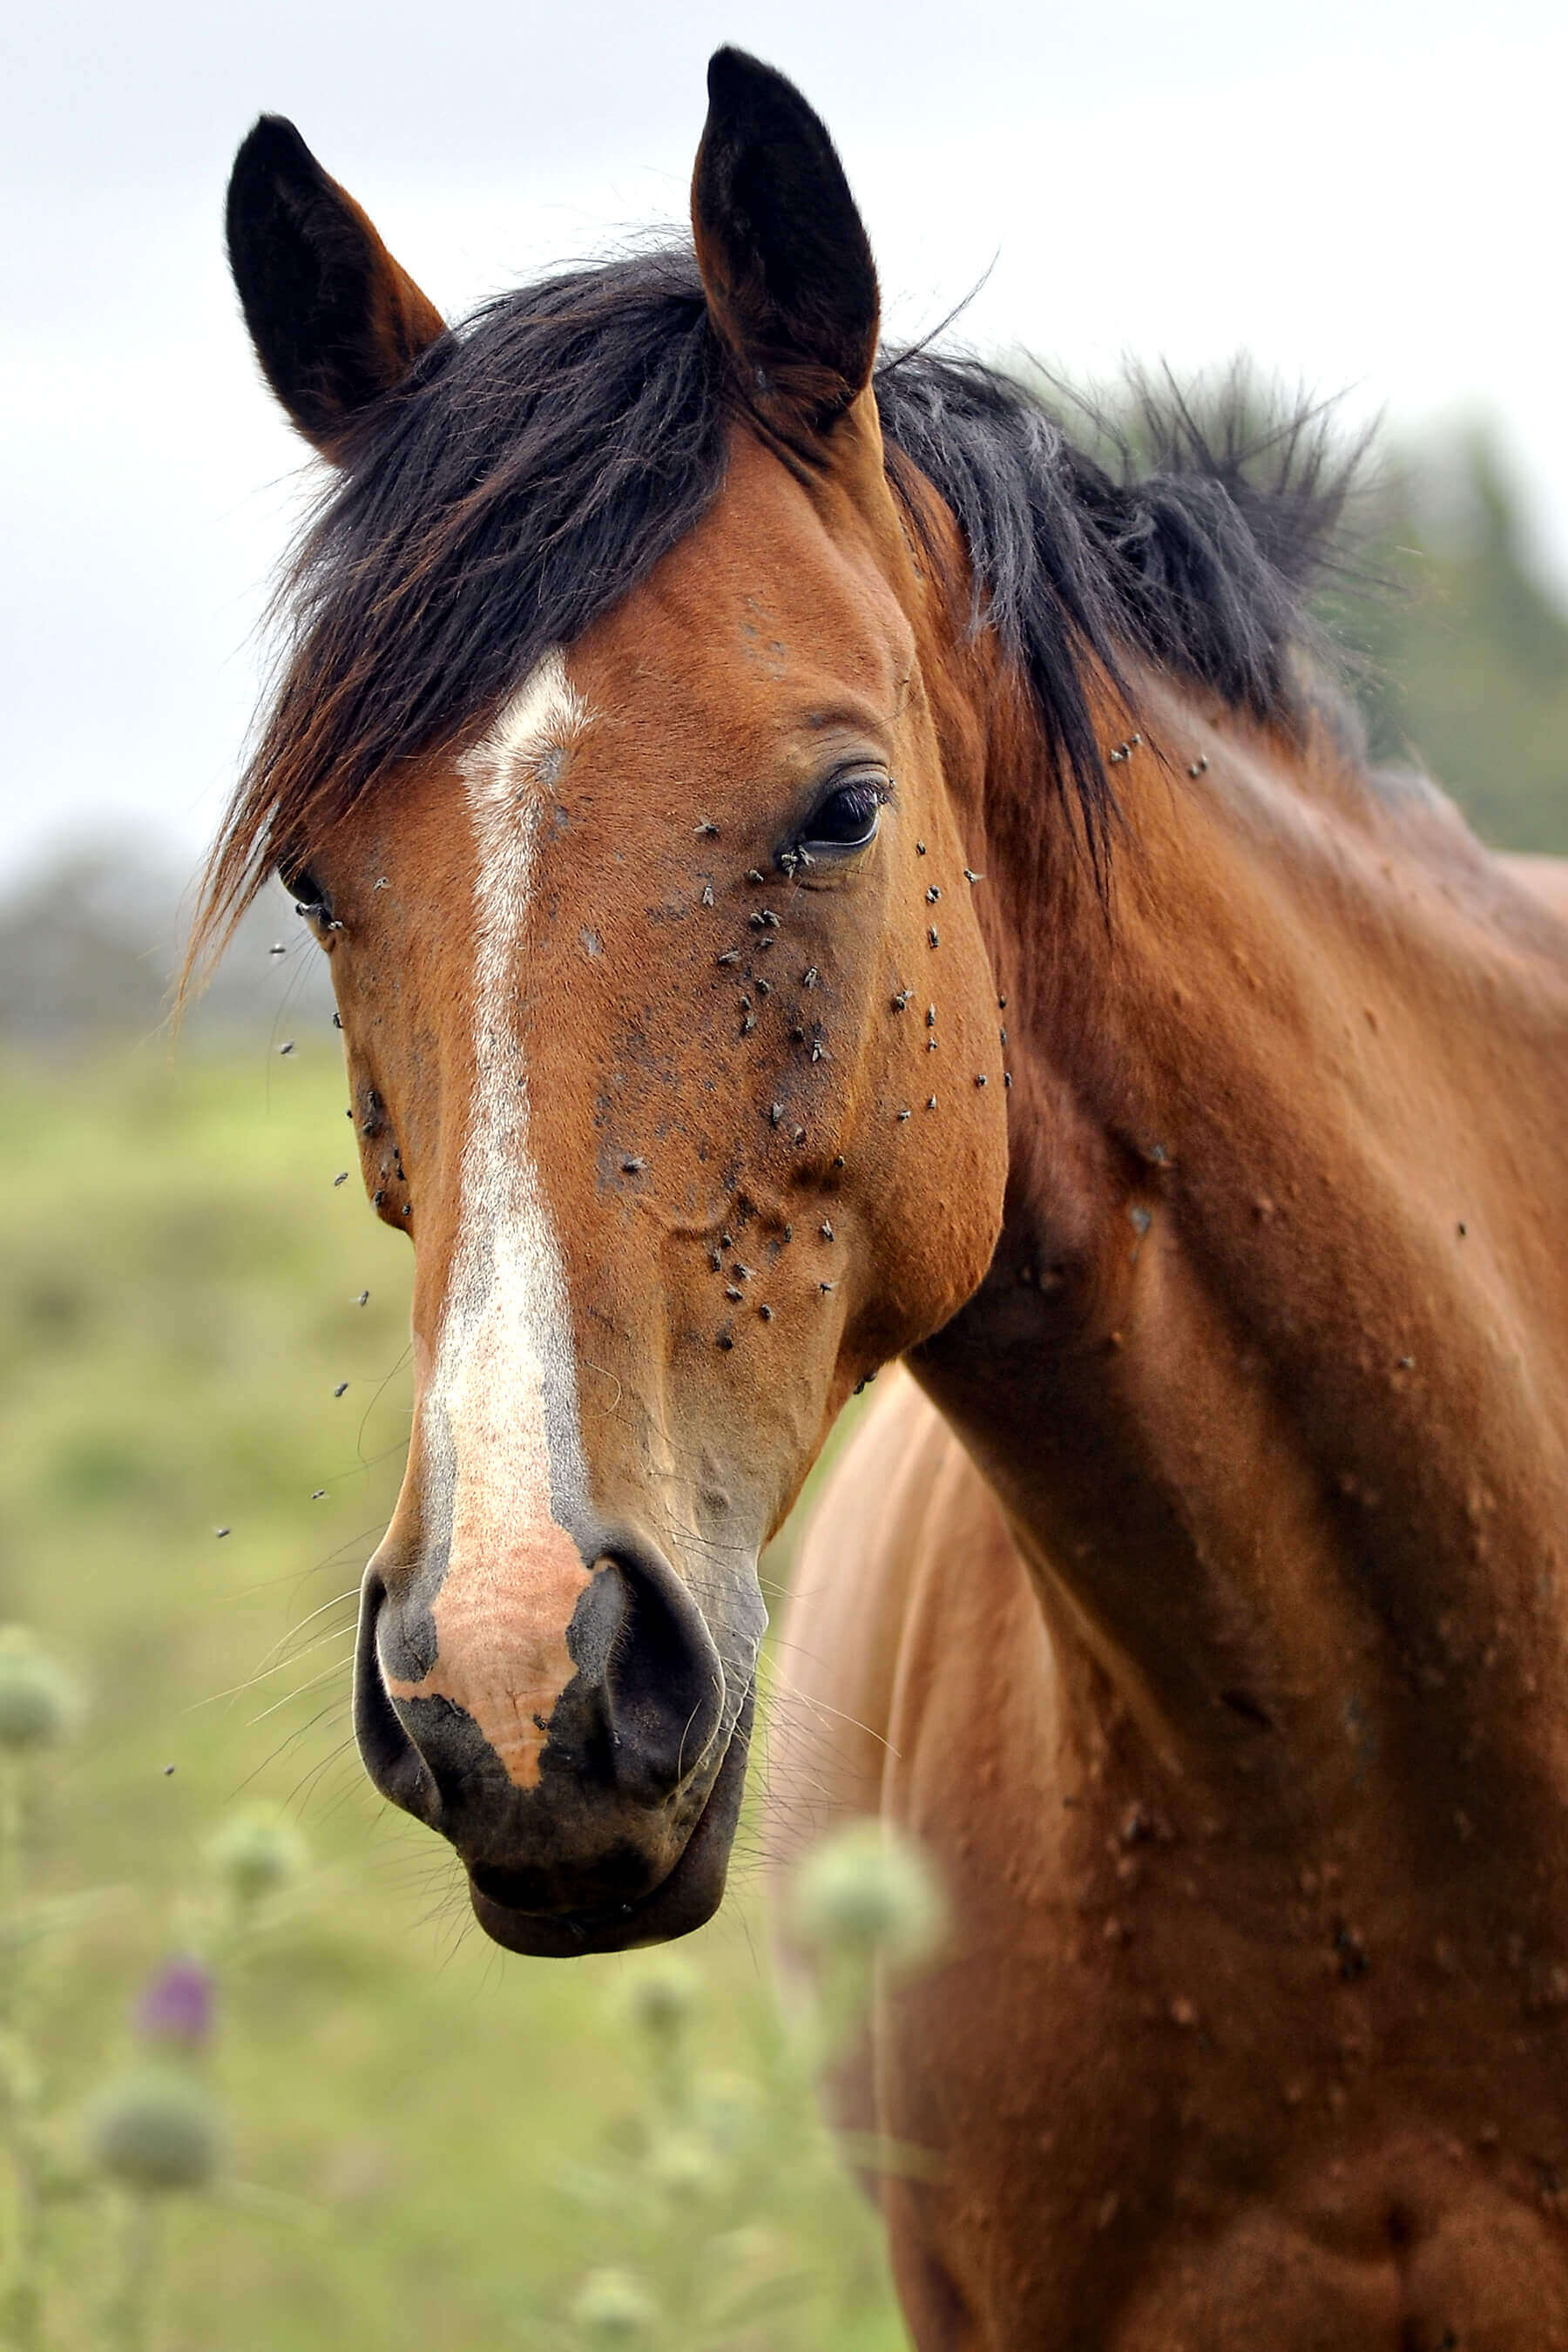 Horse covered in flies